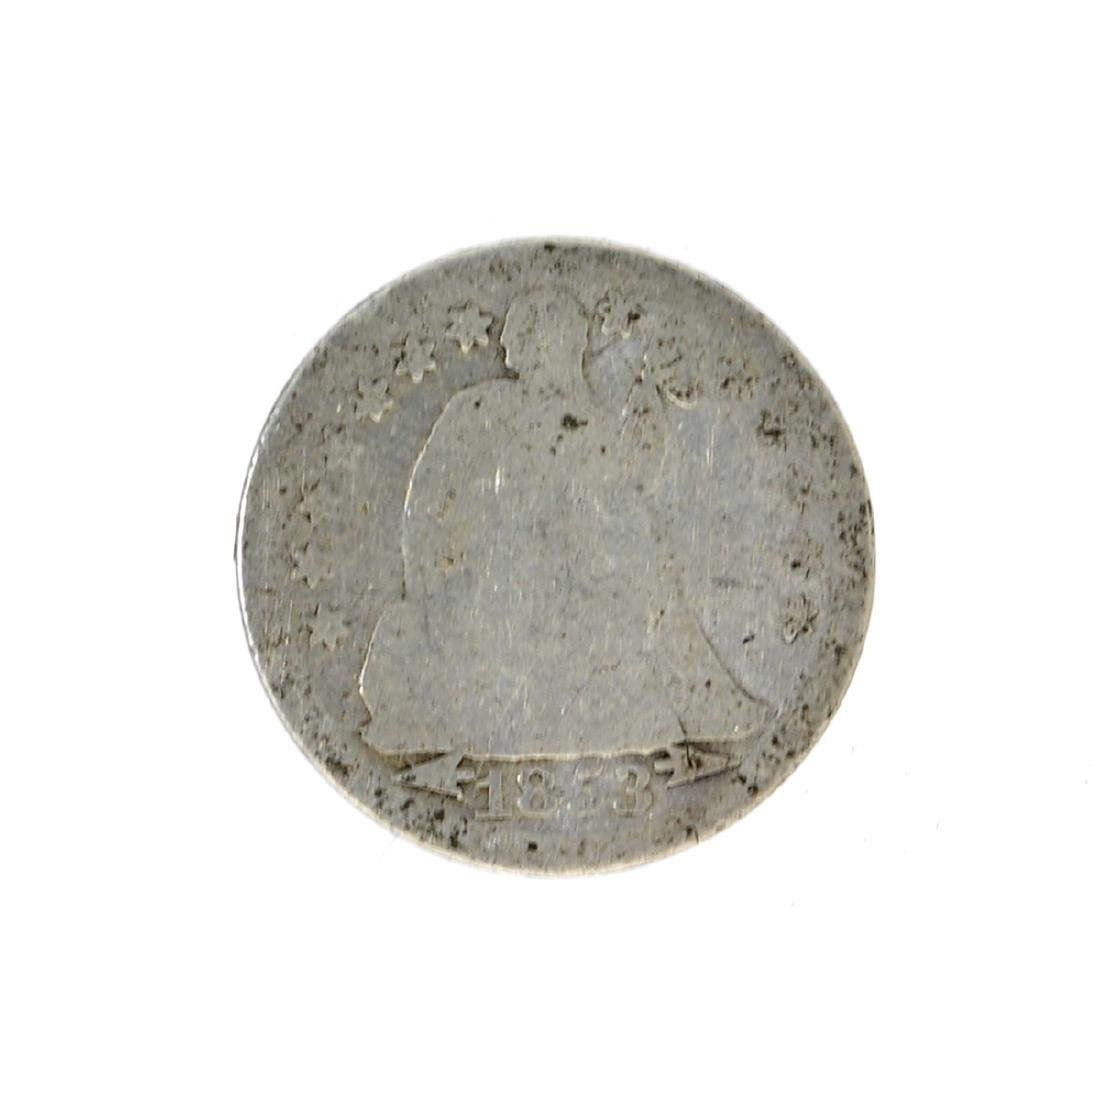 1853 Liberty Seated Arrows At Date Dime Coin